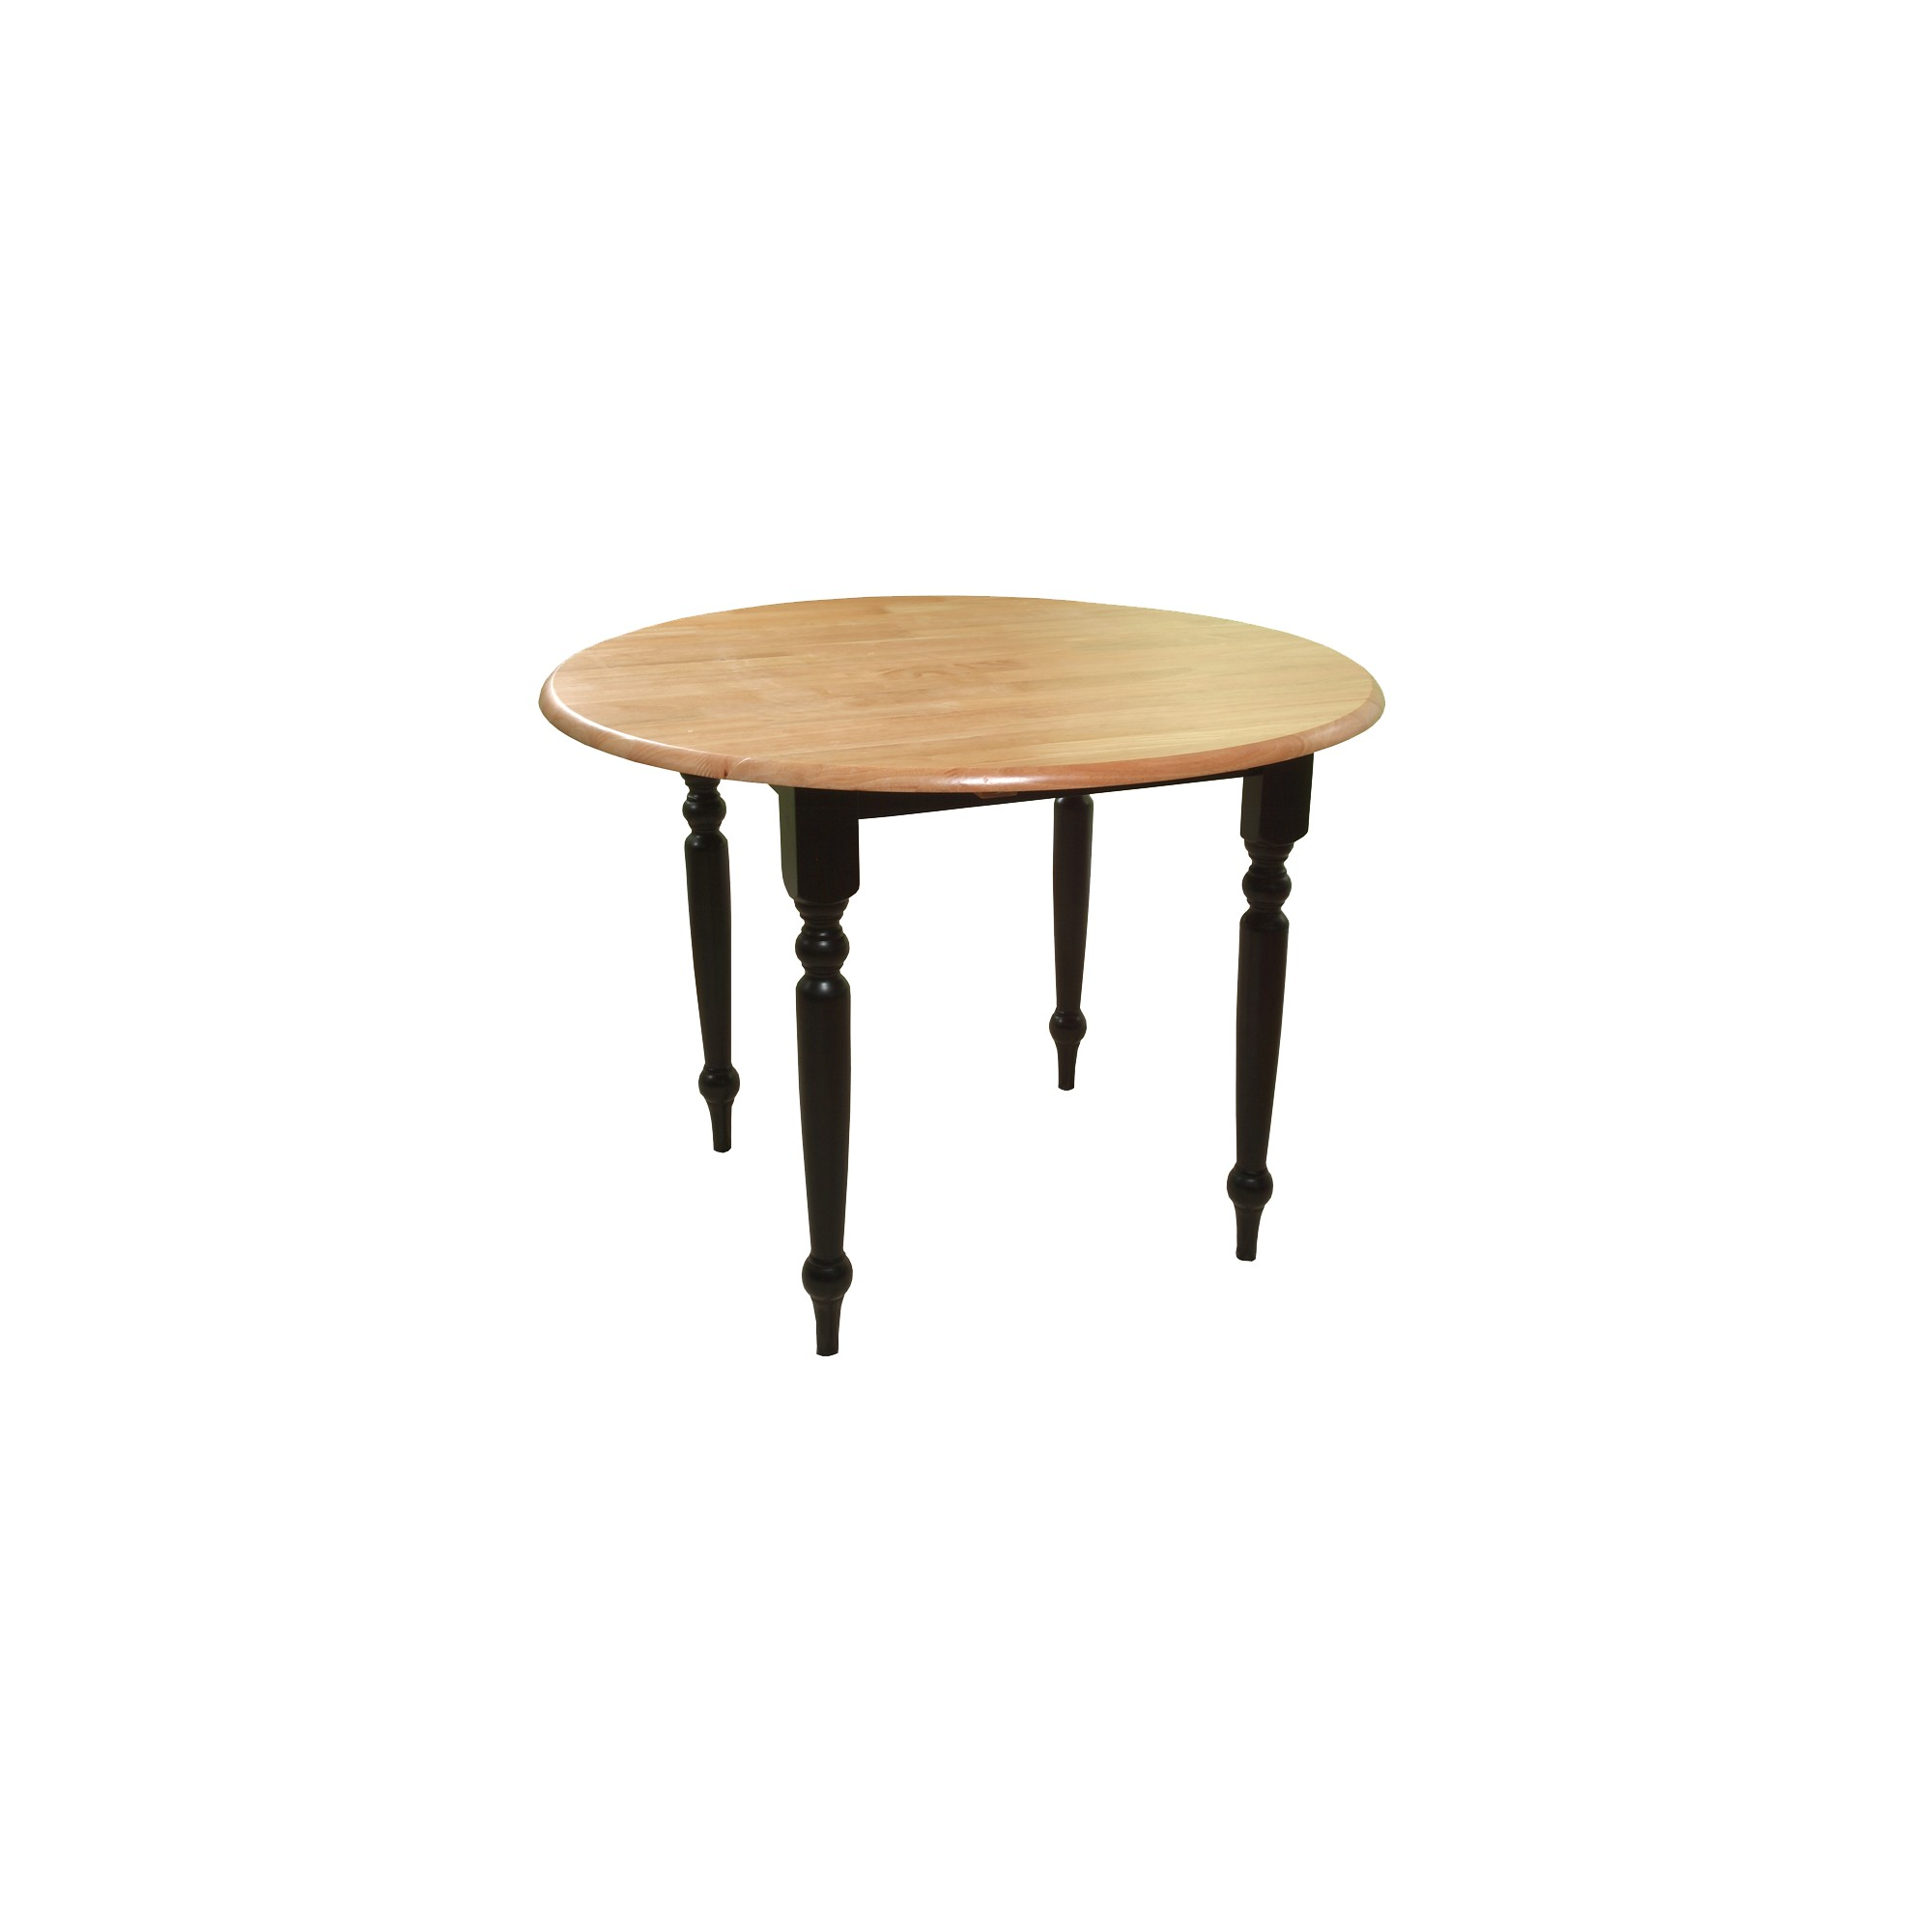 Double Drop Leaf Table Wood/Black/Natural - TMS